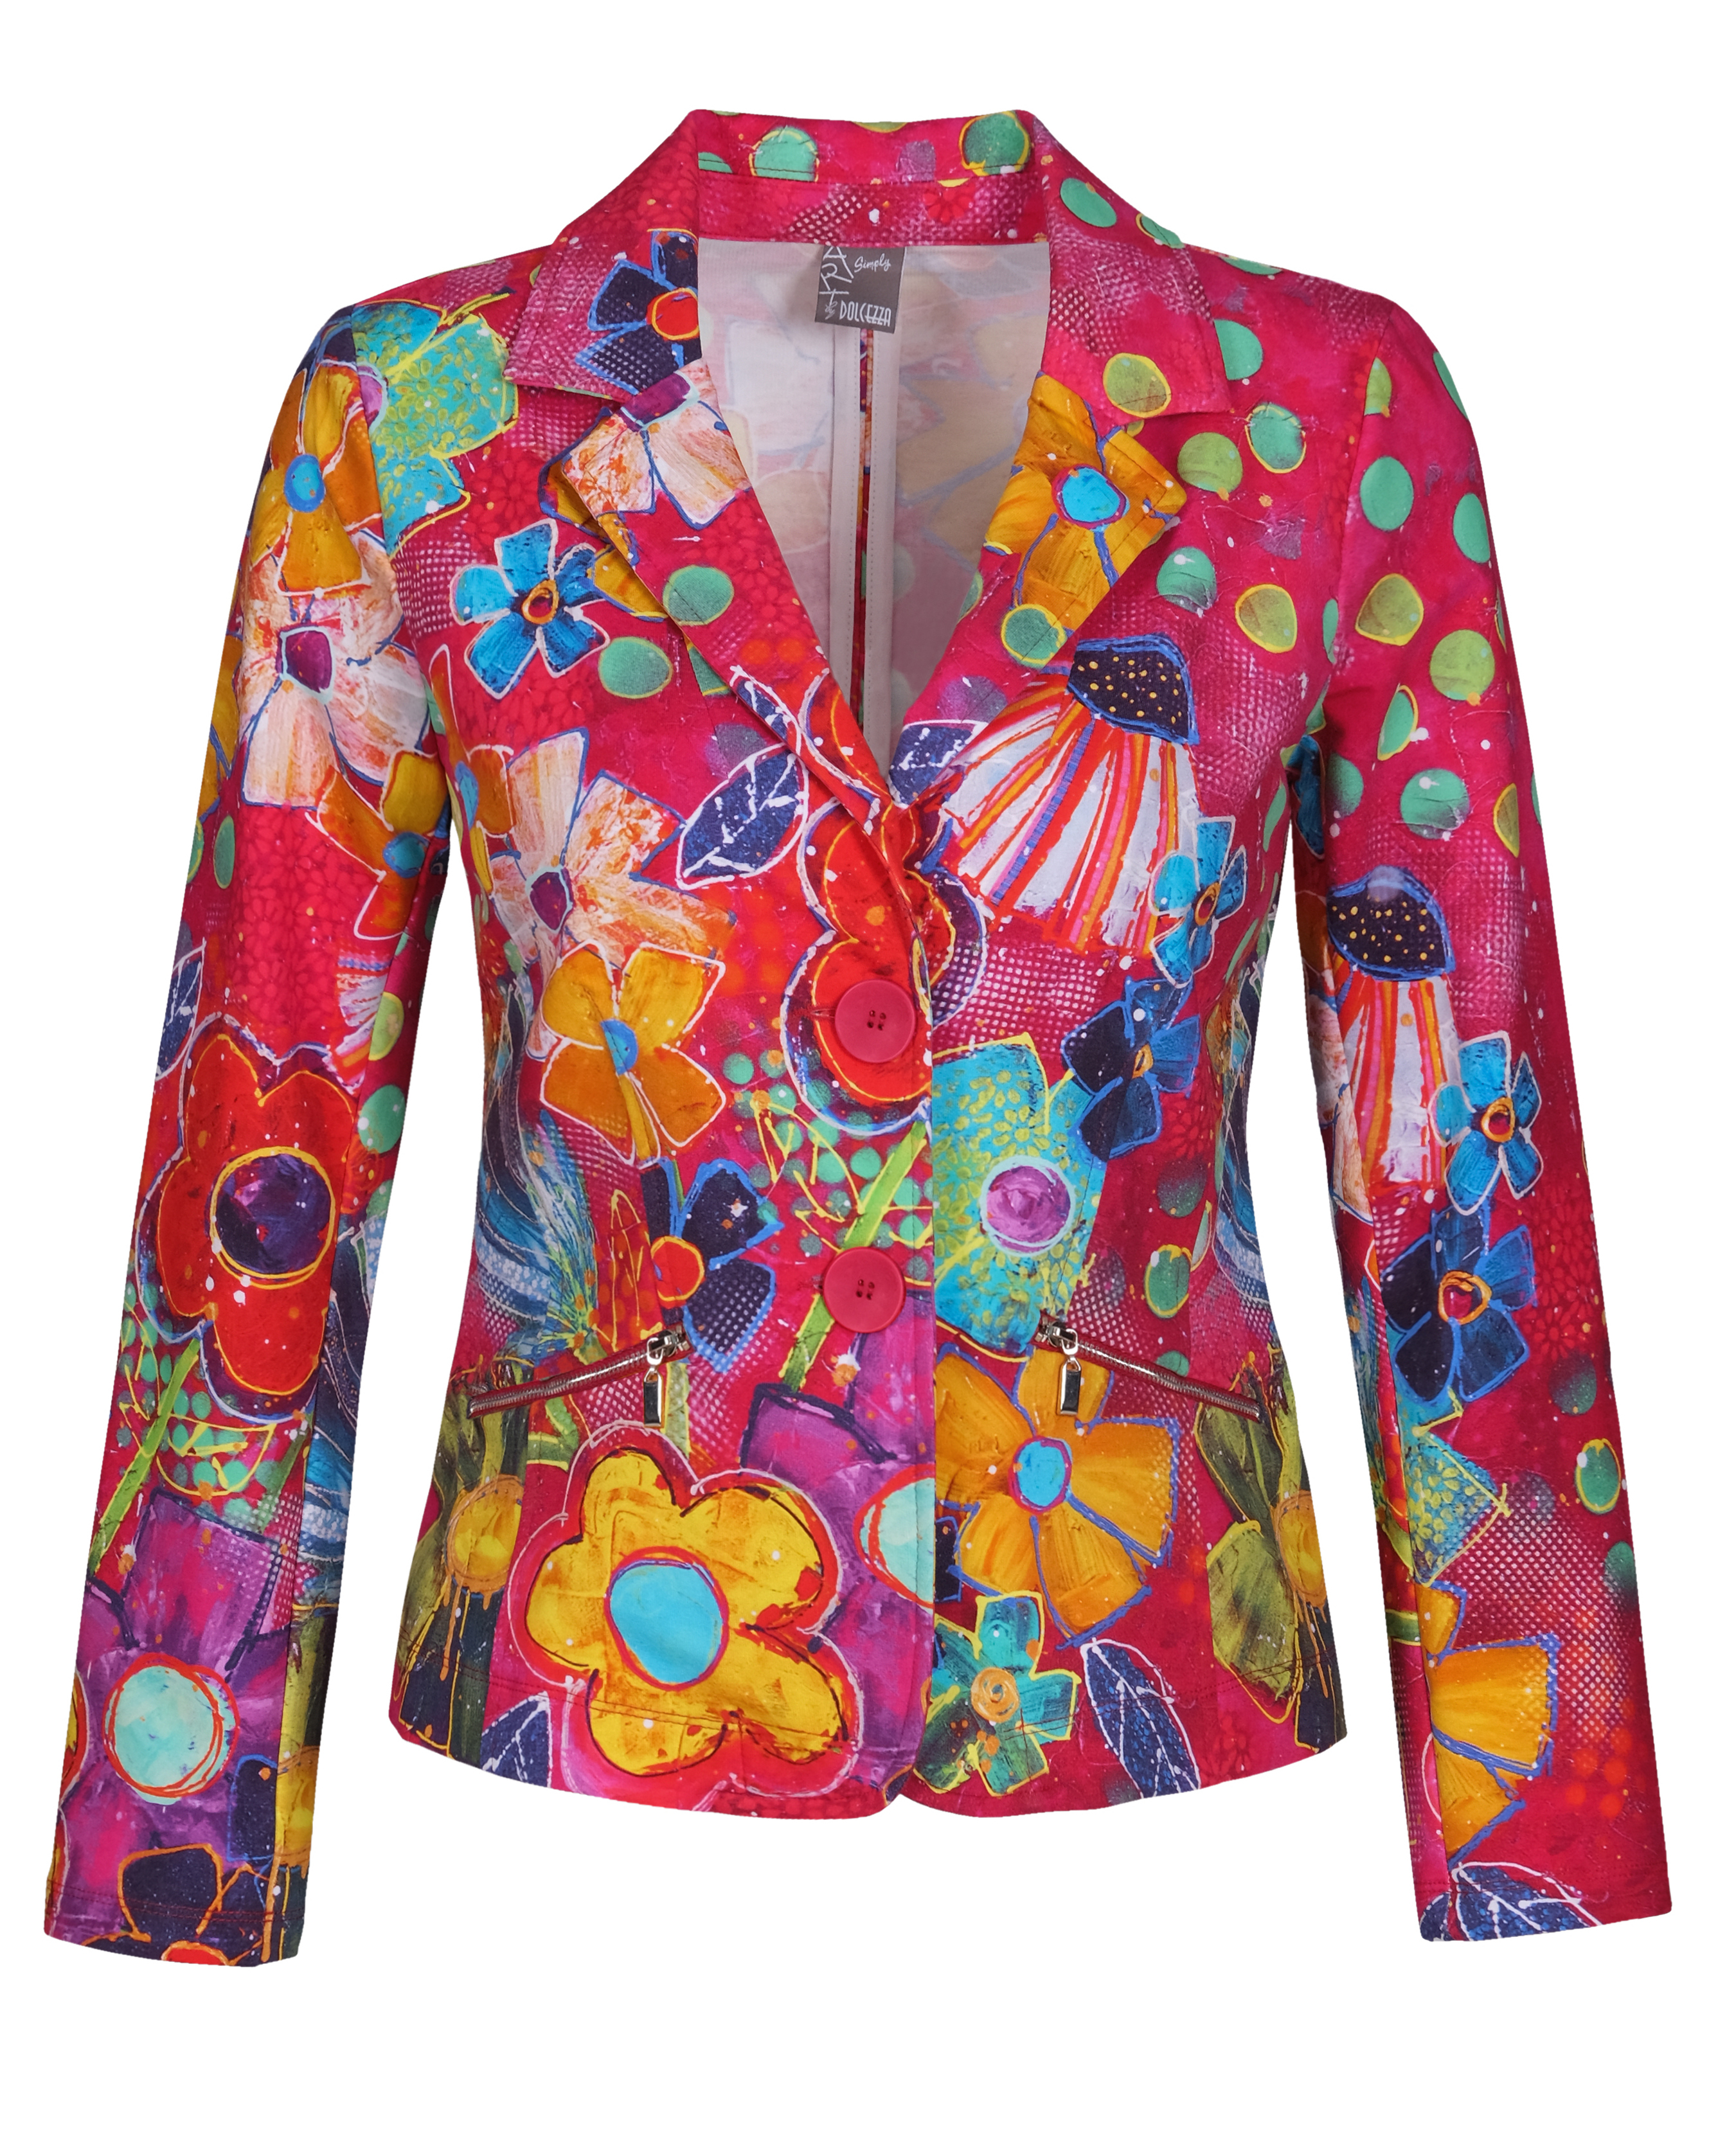 Simply Art: Fiesta Flowers Soft Denim Double Buttoned Abstract Art Jacket (1 Left!) Dolcezza_SimplyArt_21701